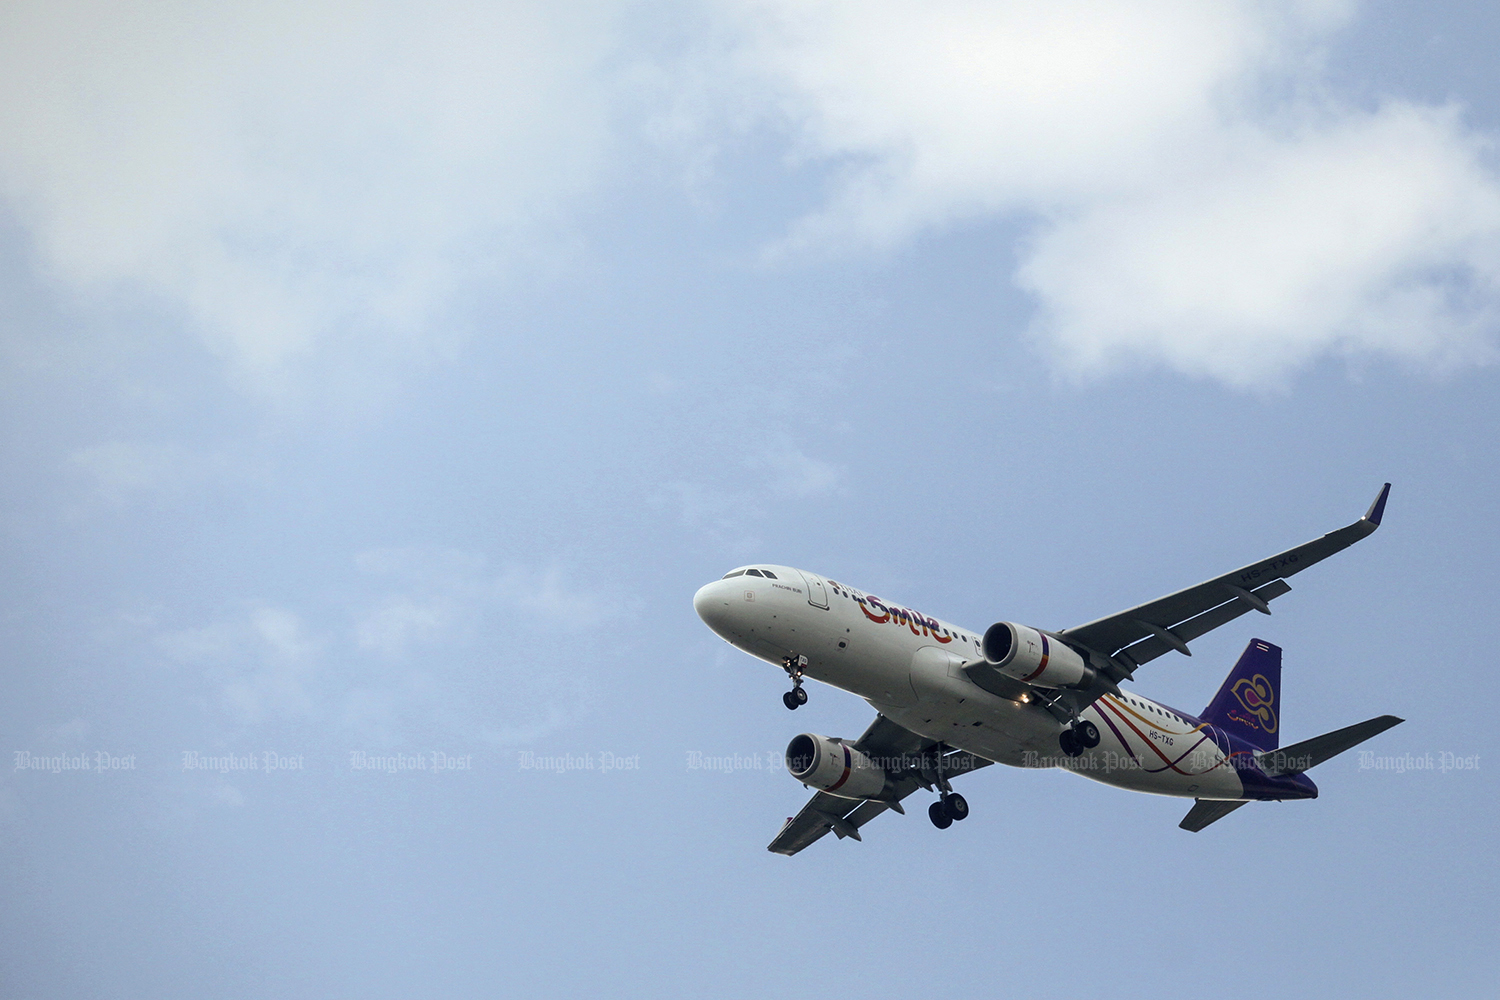 THAI Smile Airways has suffered soaring losses due to competition from other low-cost airlines. (Bangkok Post photo)